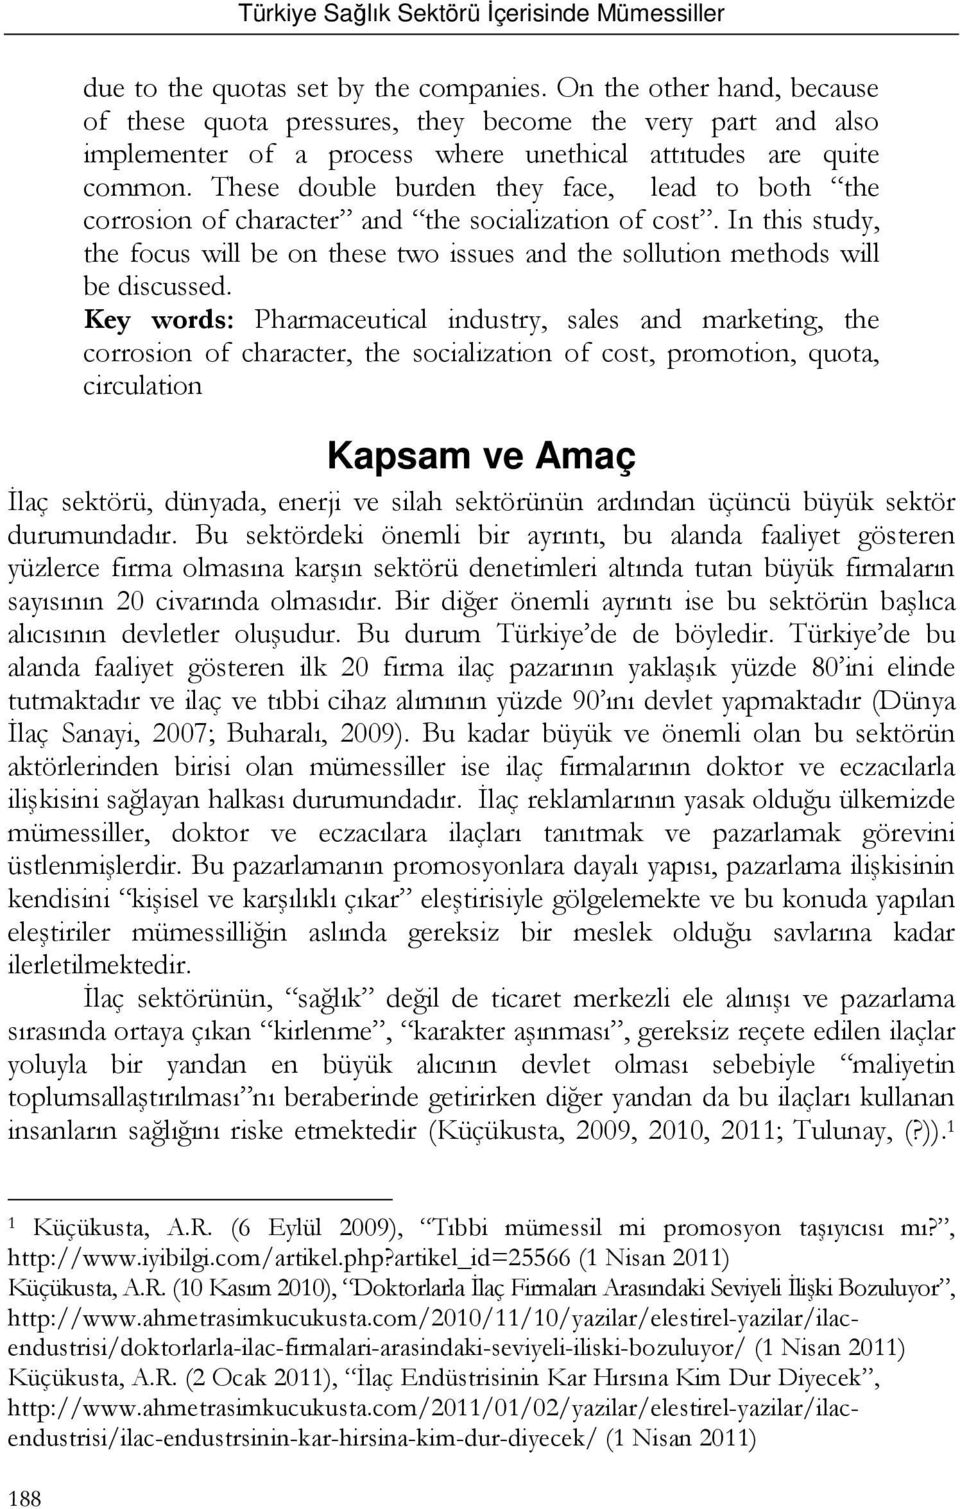 Key words: Pharmaceutical industry, sales and marketing, the corrosion of character, the socialization of cost, promotion, quota, circulation Kapsam ve Amaç İlaç sektörü, dünyada, enerji ve silah